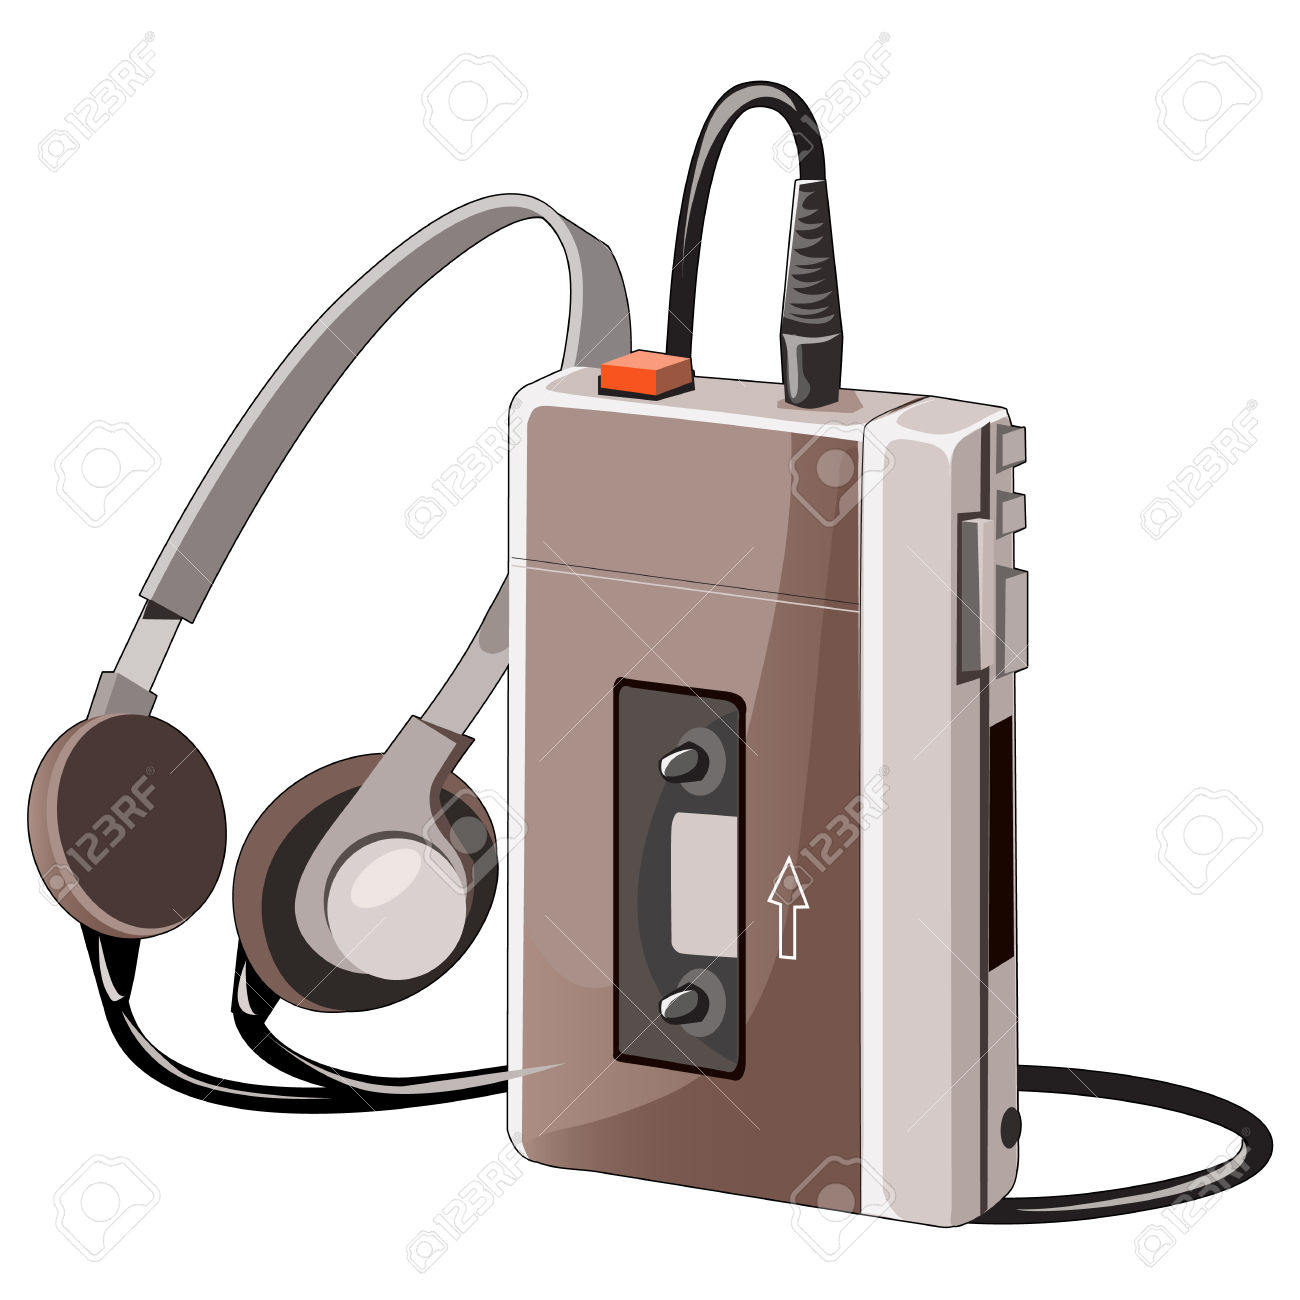 old music player clipart #7